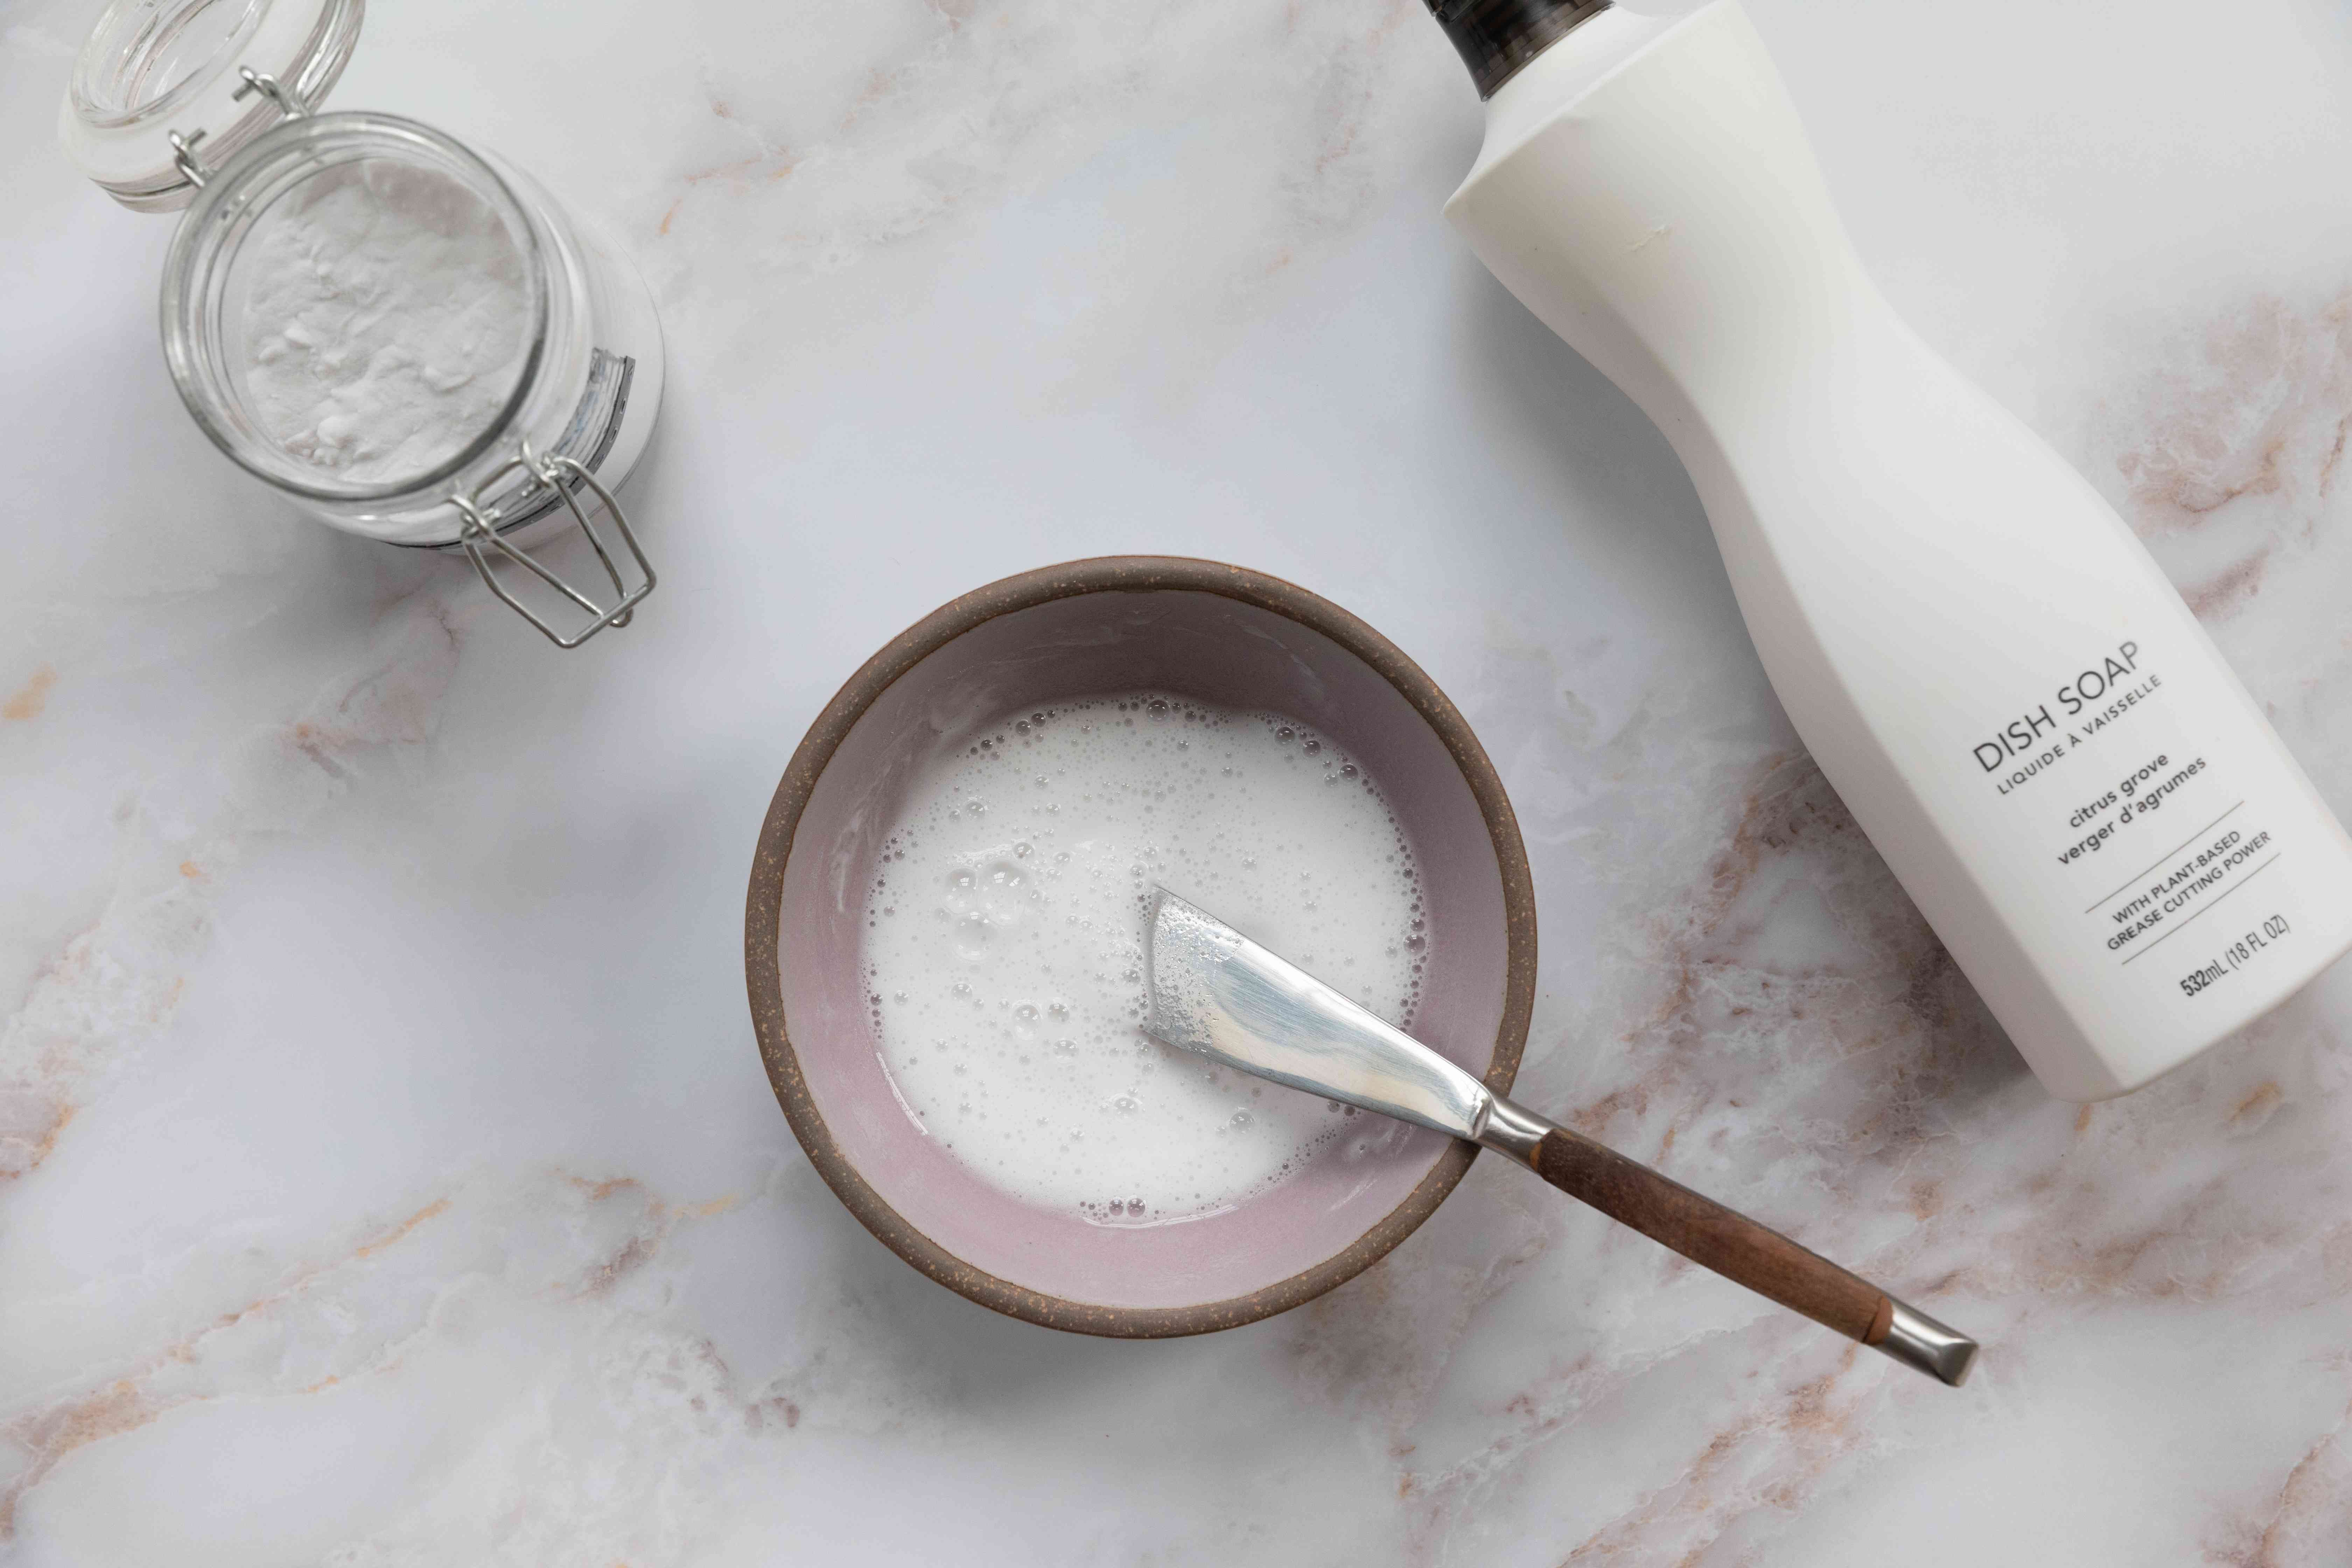 Baking soda and dish soap containers next to bowl of mixed cleaning solution for pink mold